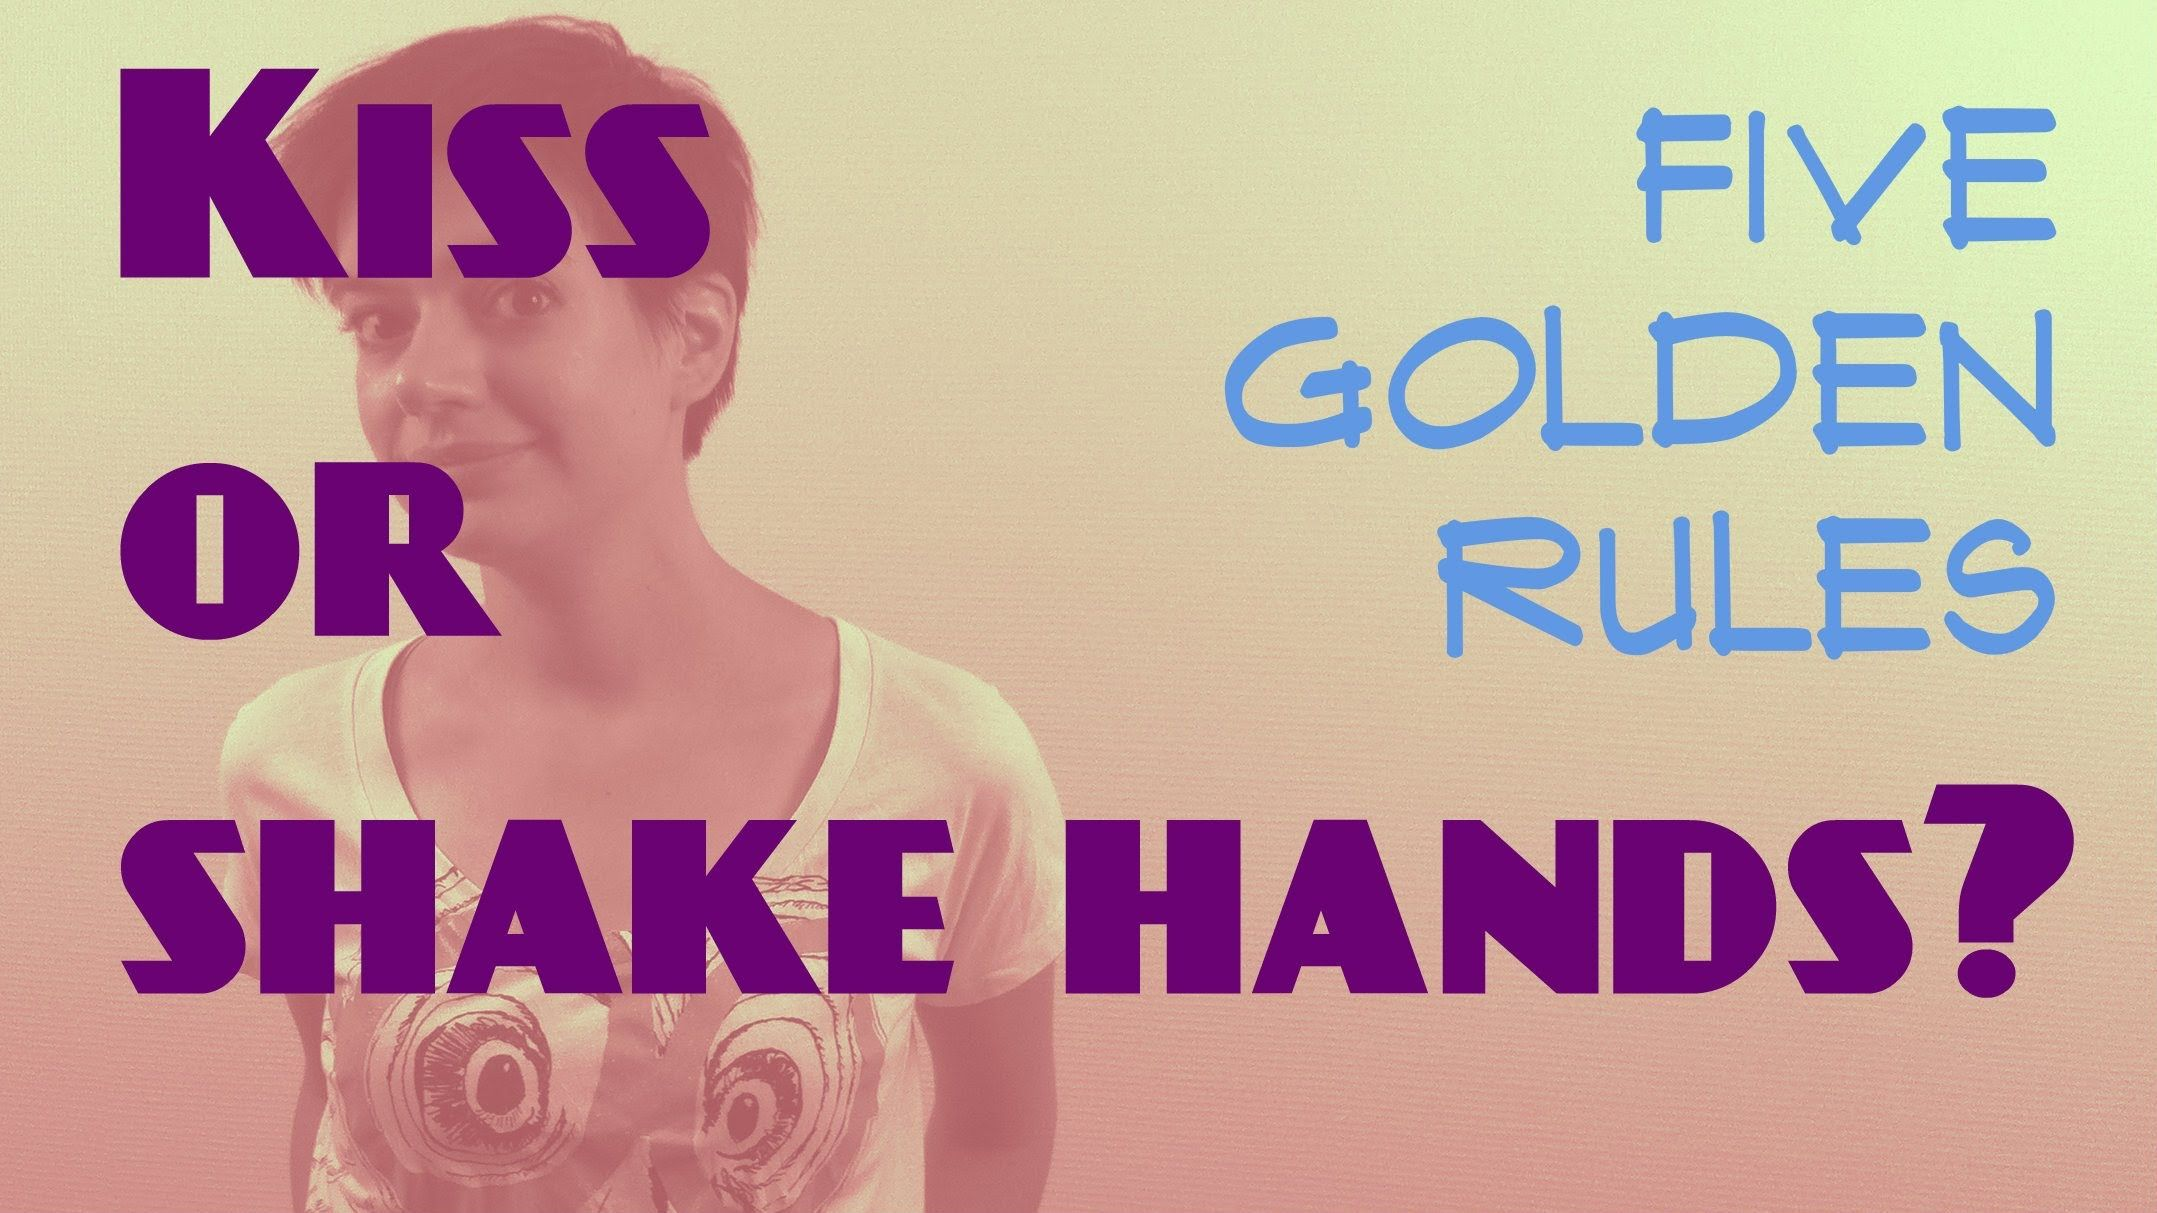 Kiss Or Shake Hands My 5 Golden Rules About Greeting In